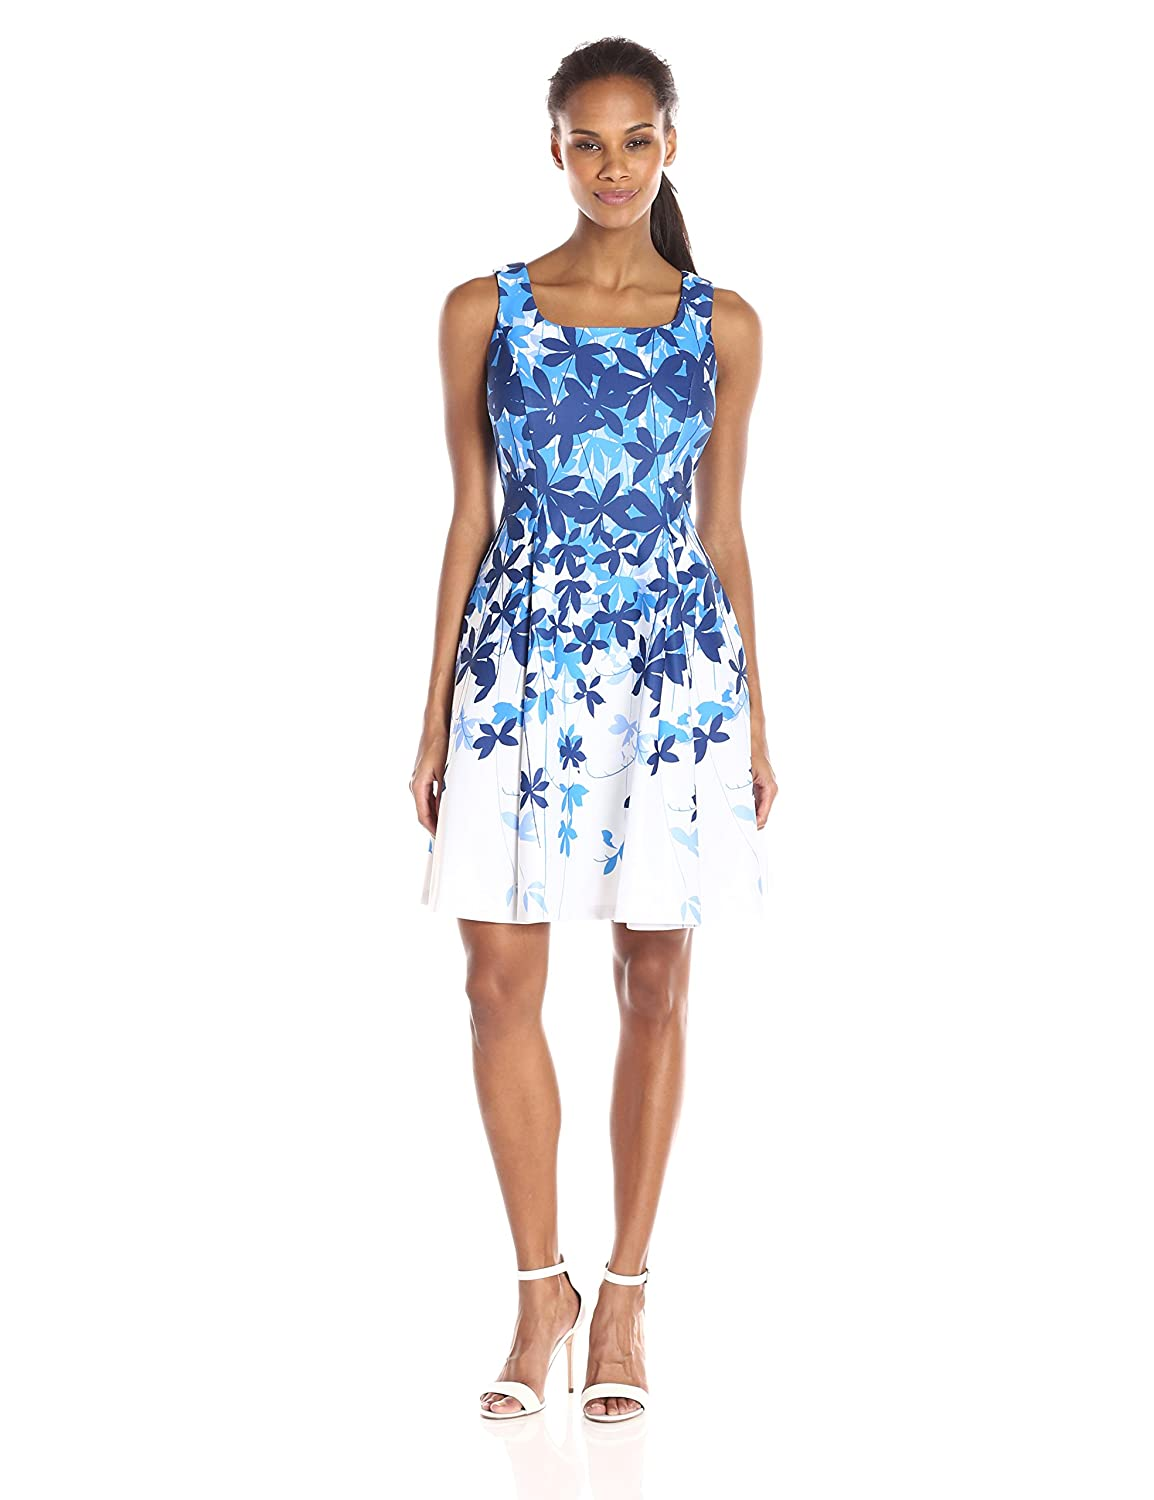 bluee Ivory Julian Taylor Womens Floral Printed Fit and Flared Dress Dress